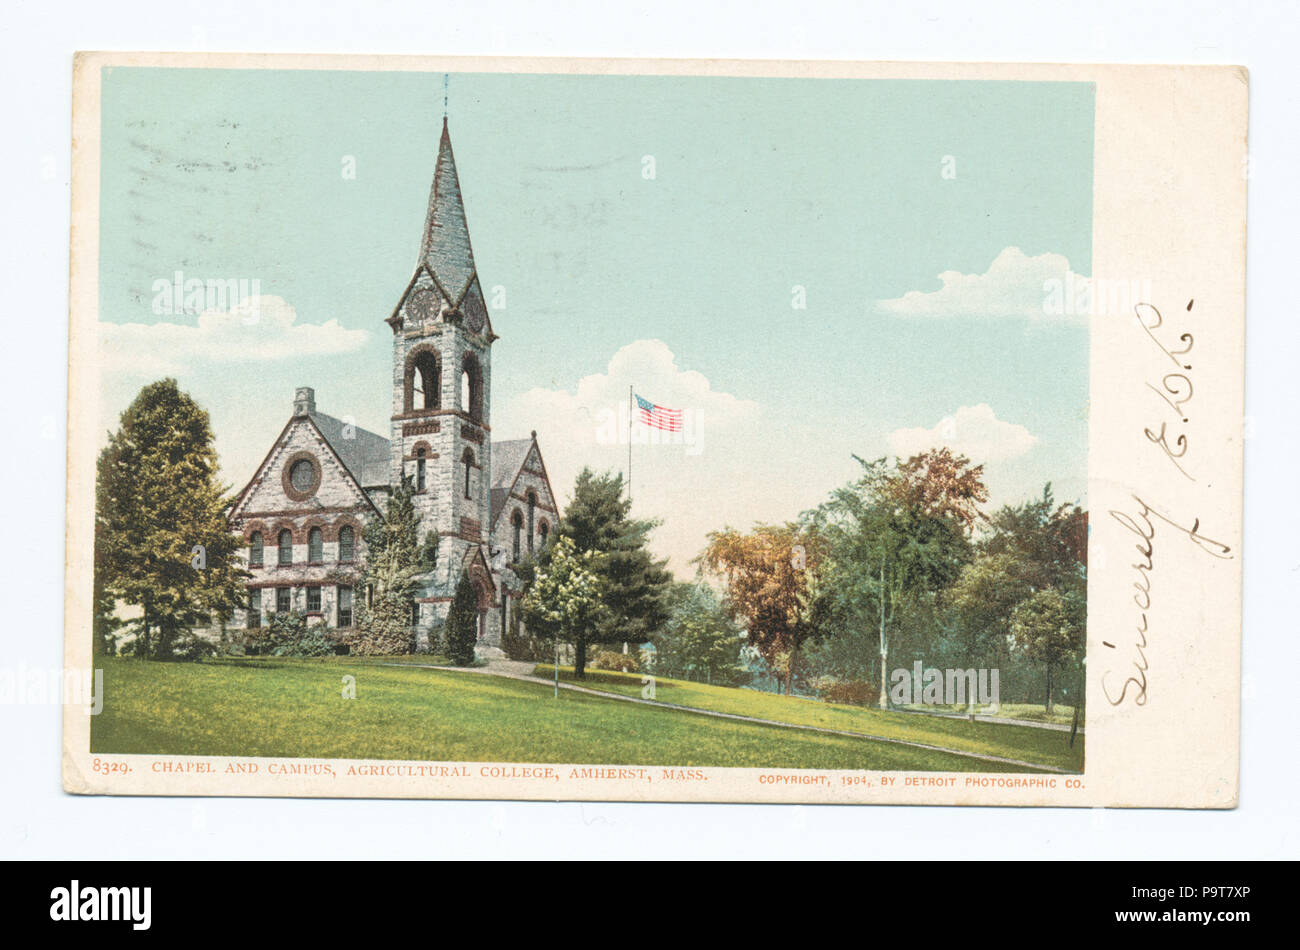 296 Chapel And Campus Agr College Amherst Mass NYPL B12647398 67697